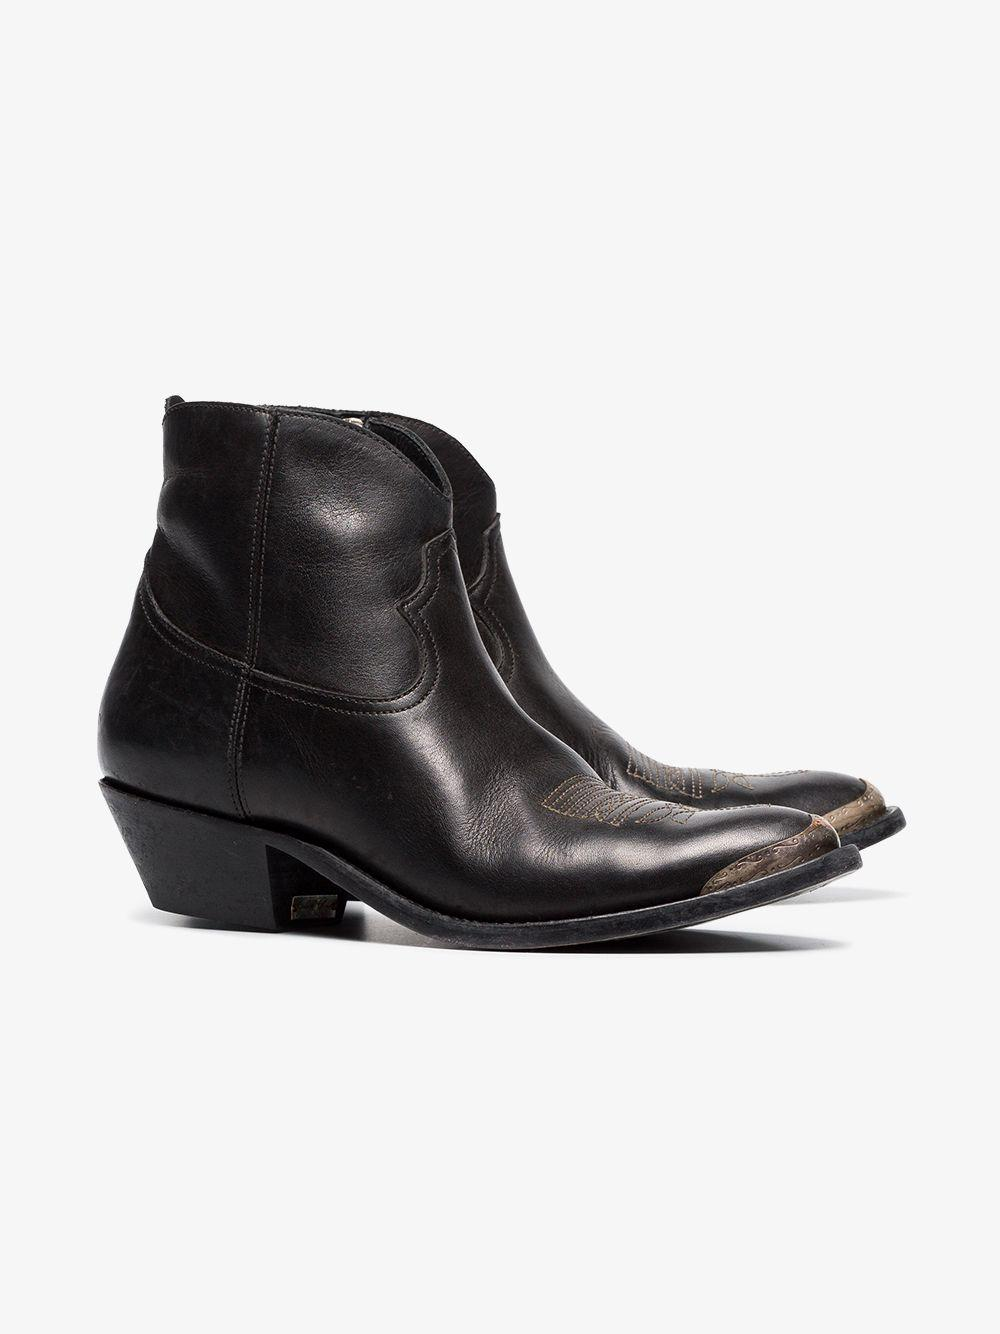 Golden Goose Deluxe Brand Golden Goose Black Young 40 Cowboy Leather Ankle Boots